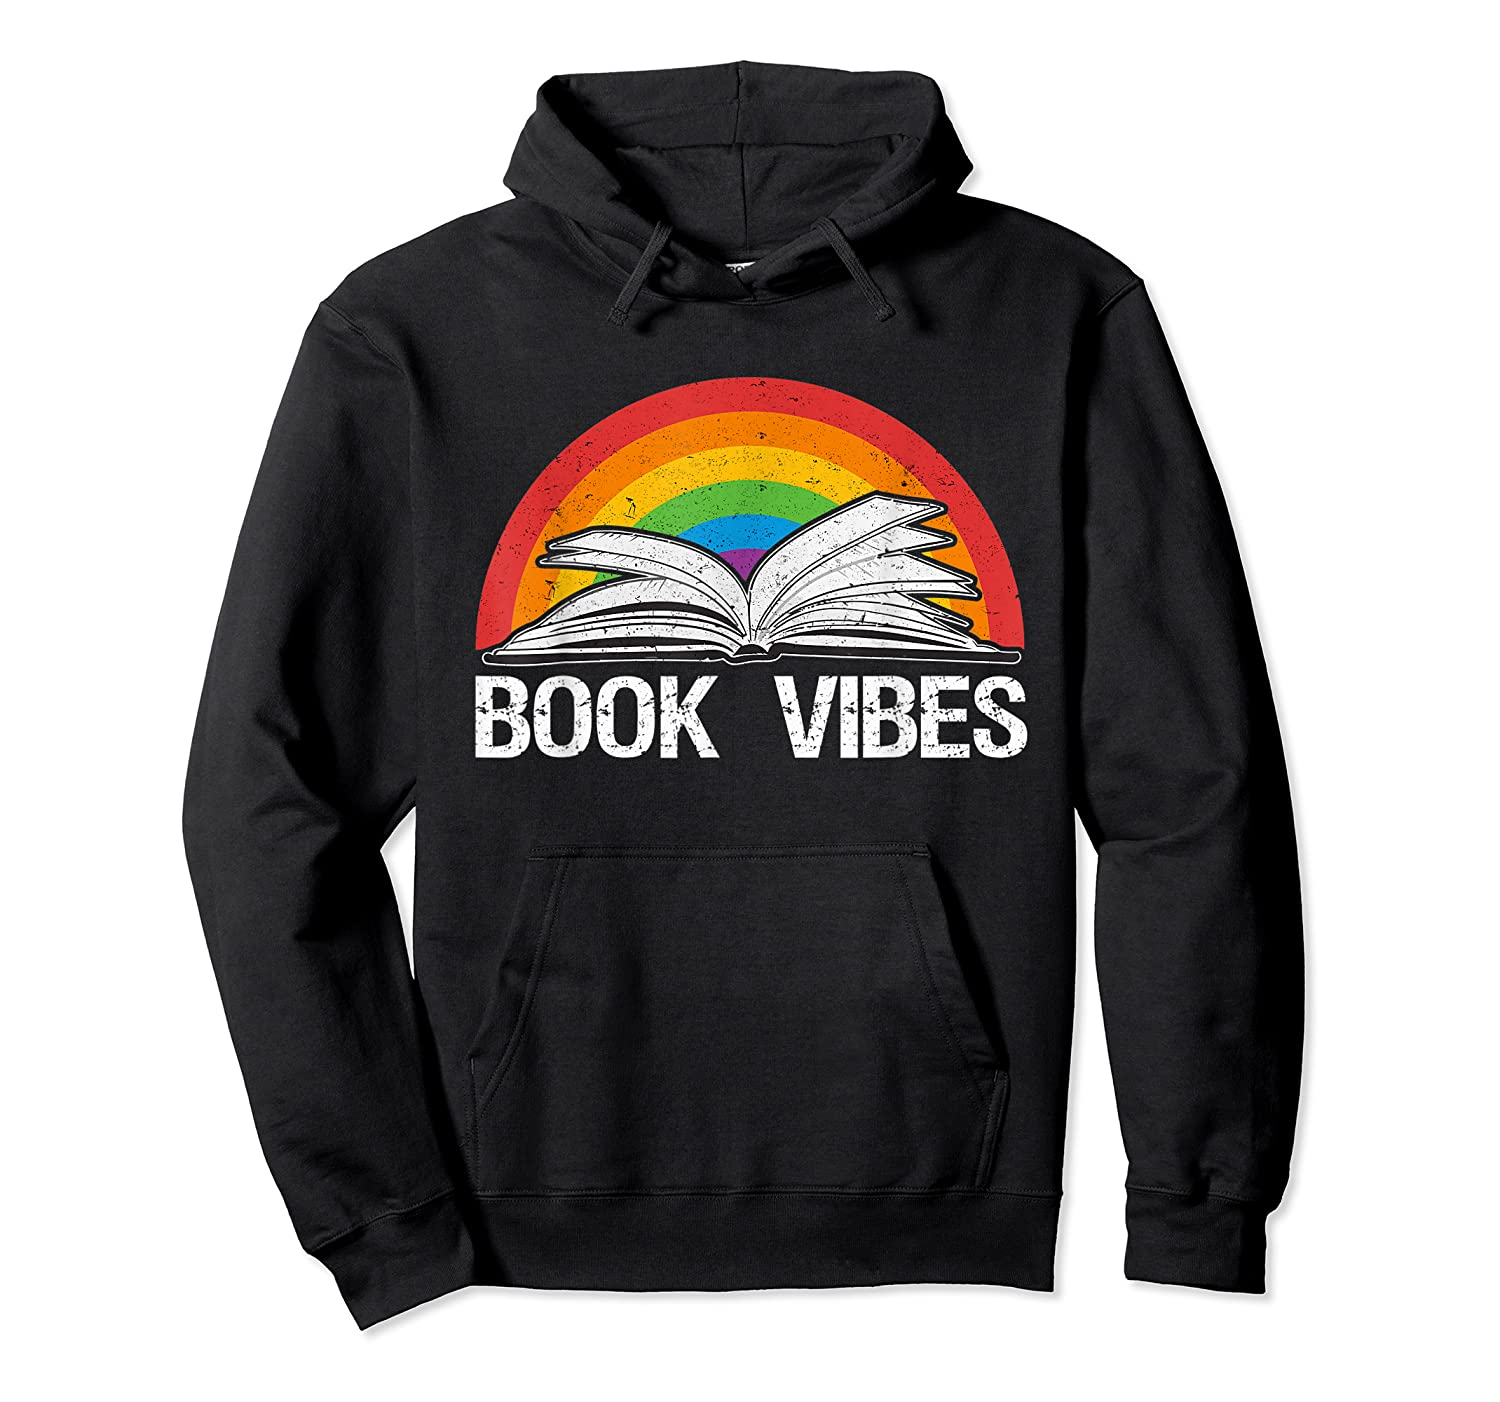 Vintage Retro Book Vibes Rainbow Gift For Reading Lovers T Shirt Unisex Pullover Hoodie